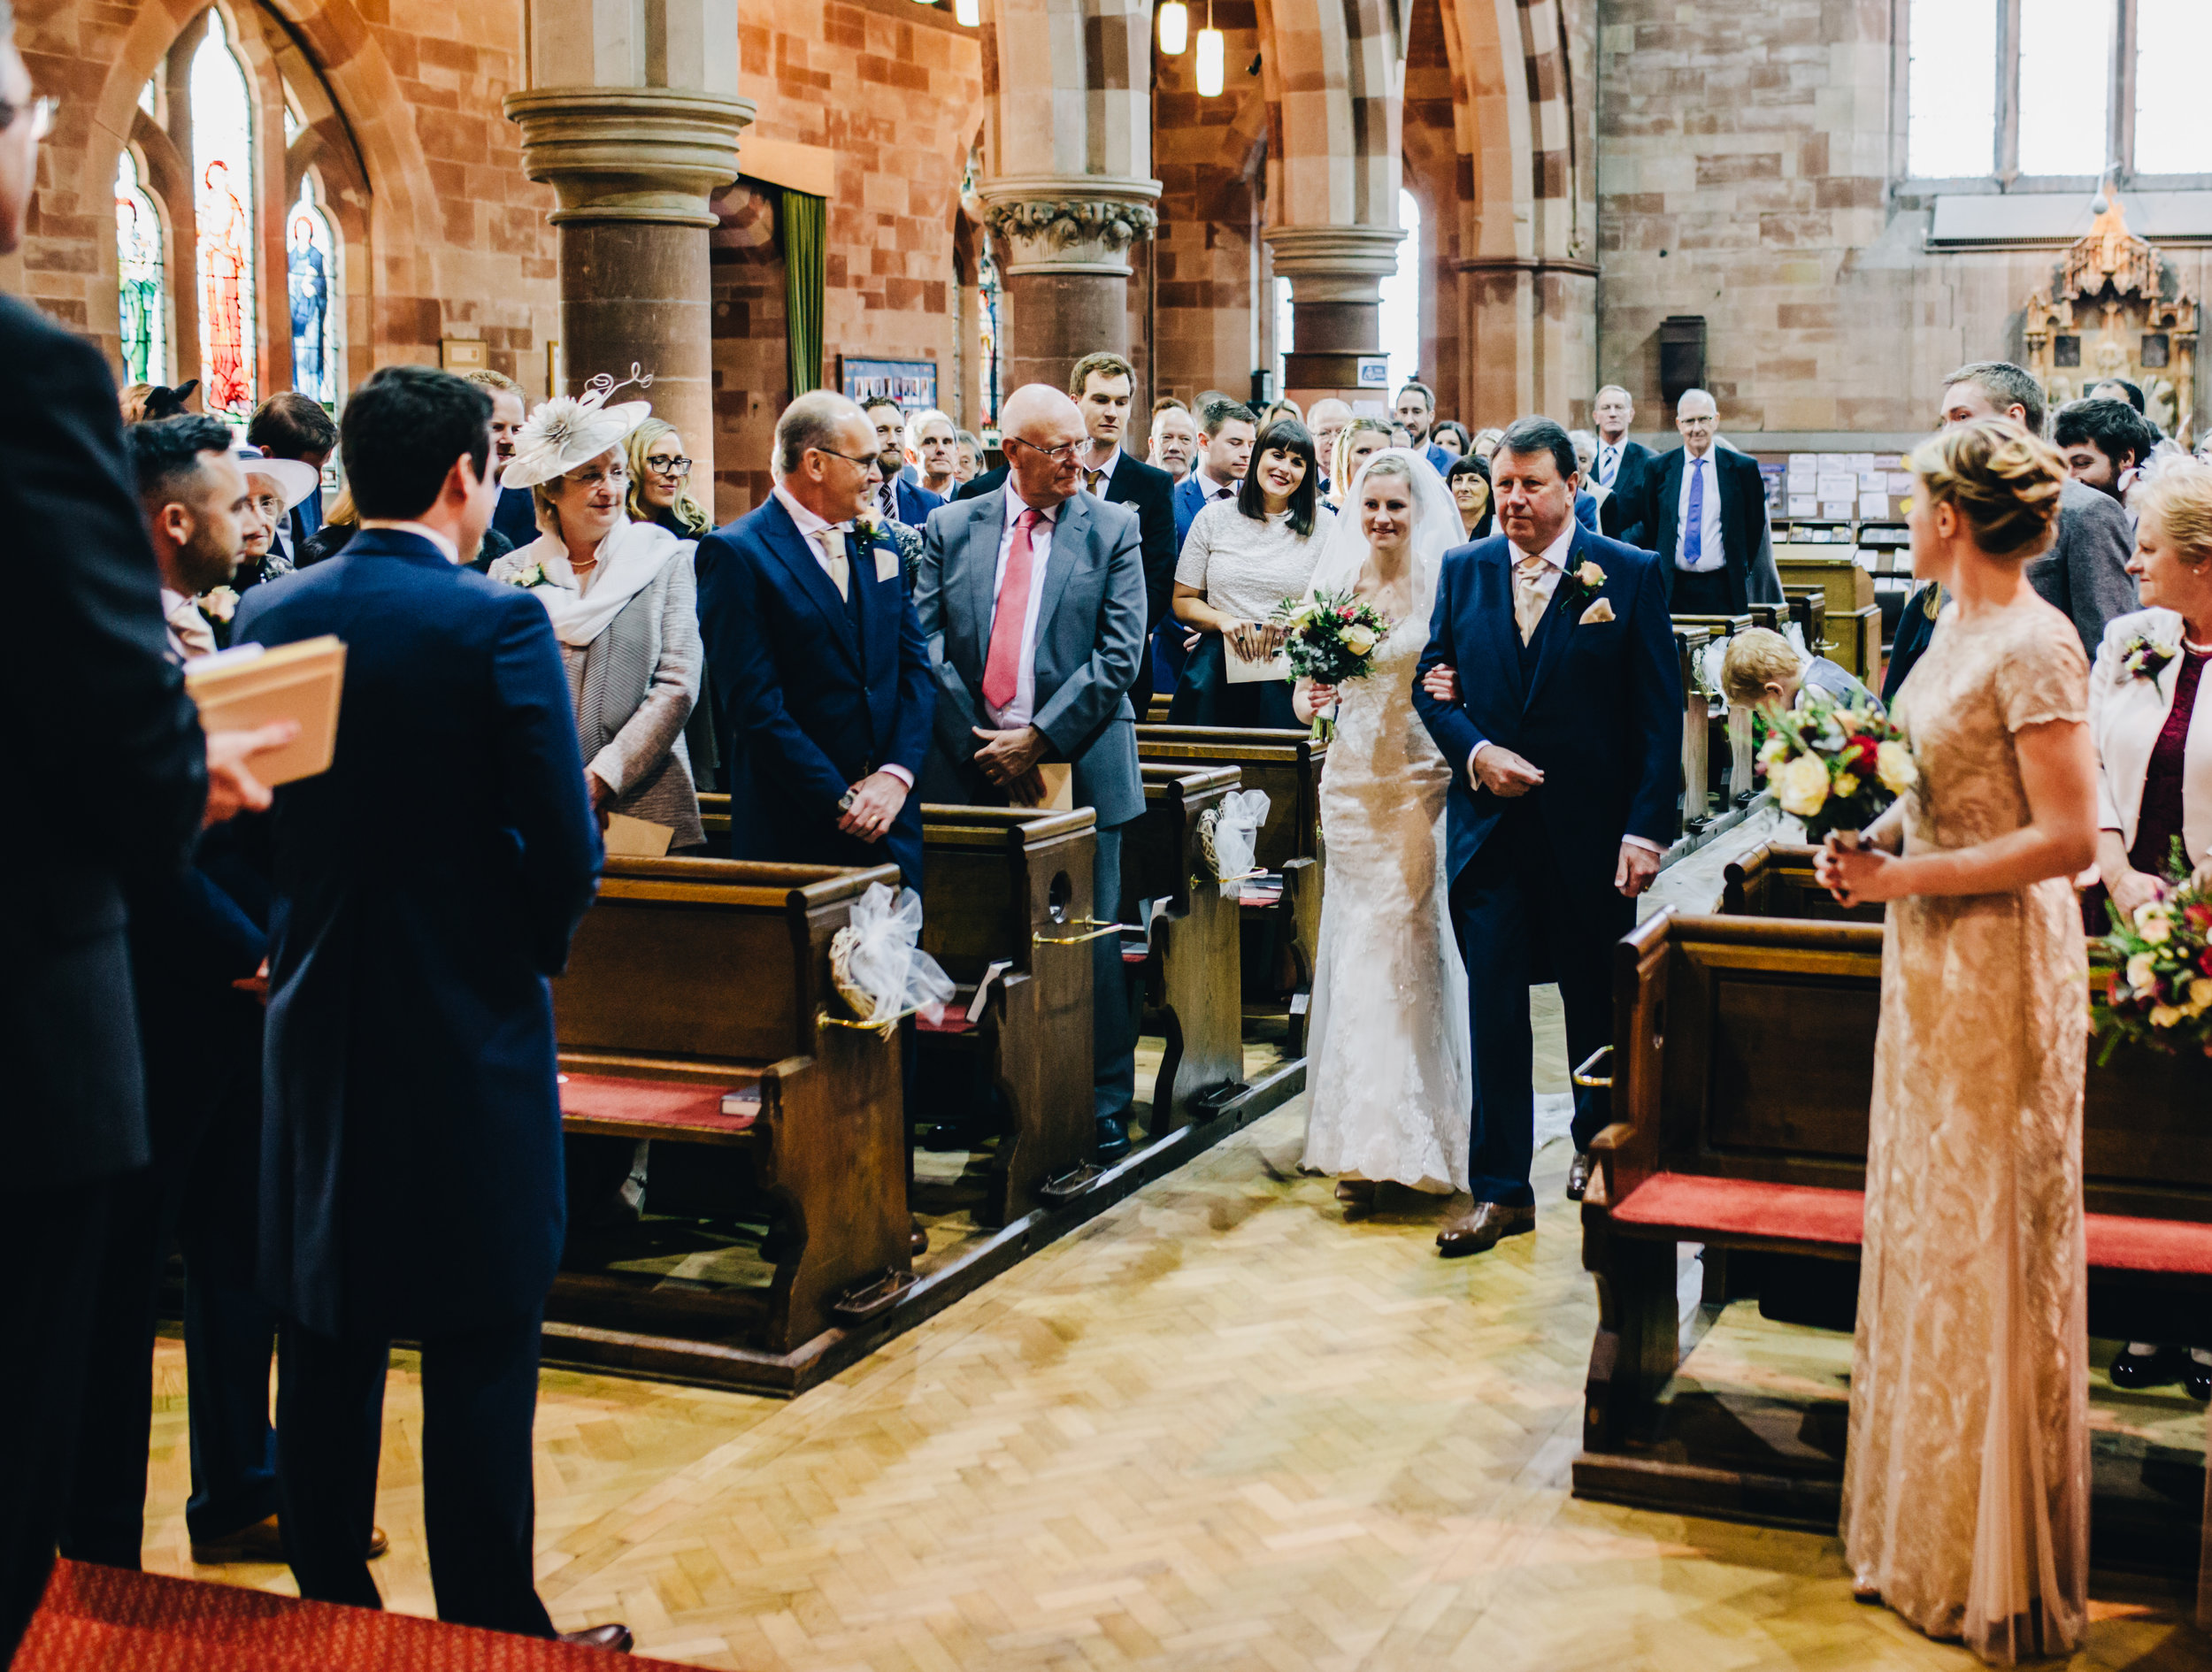 walking down the aisle - shropshire church